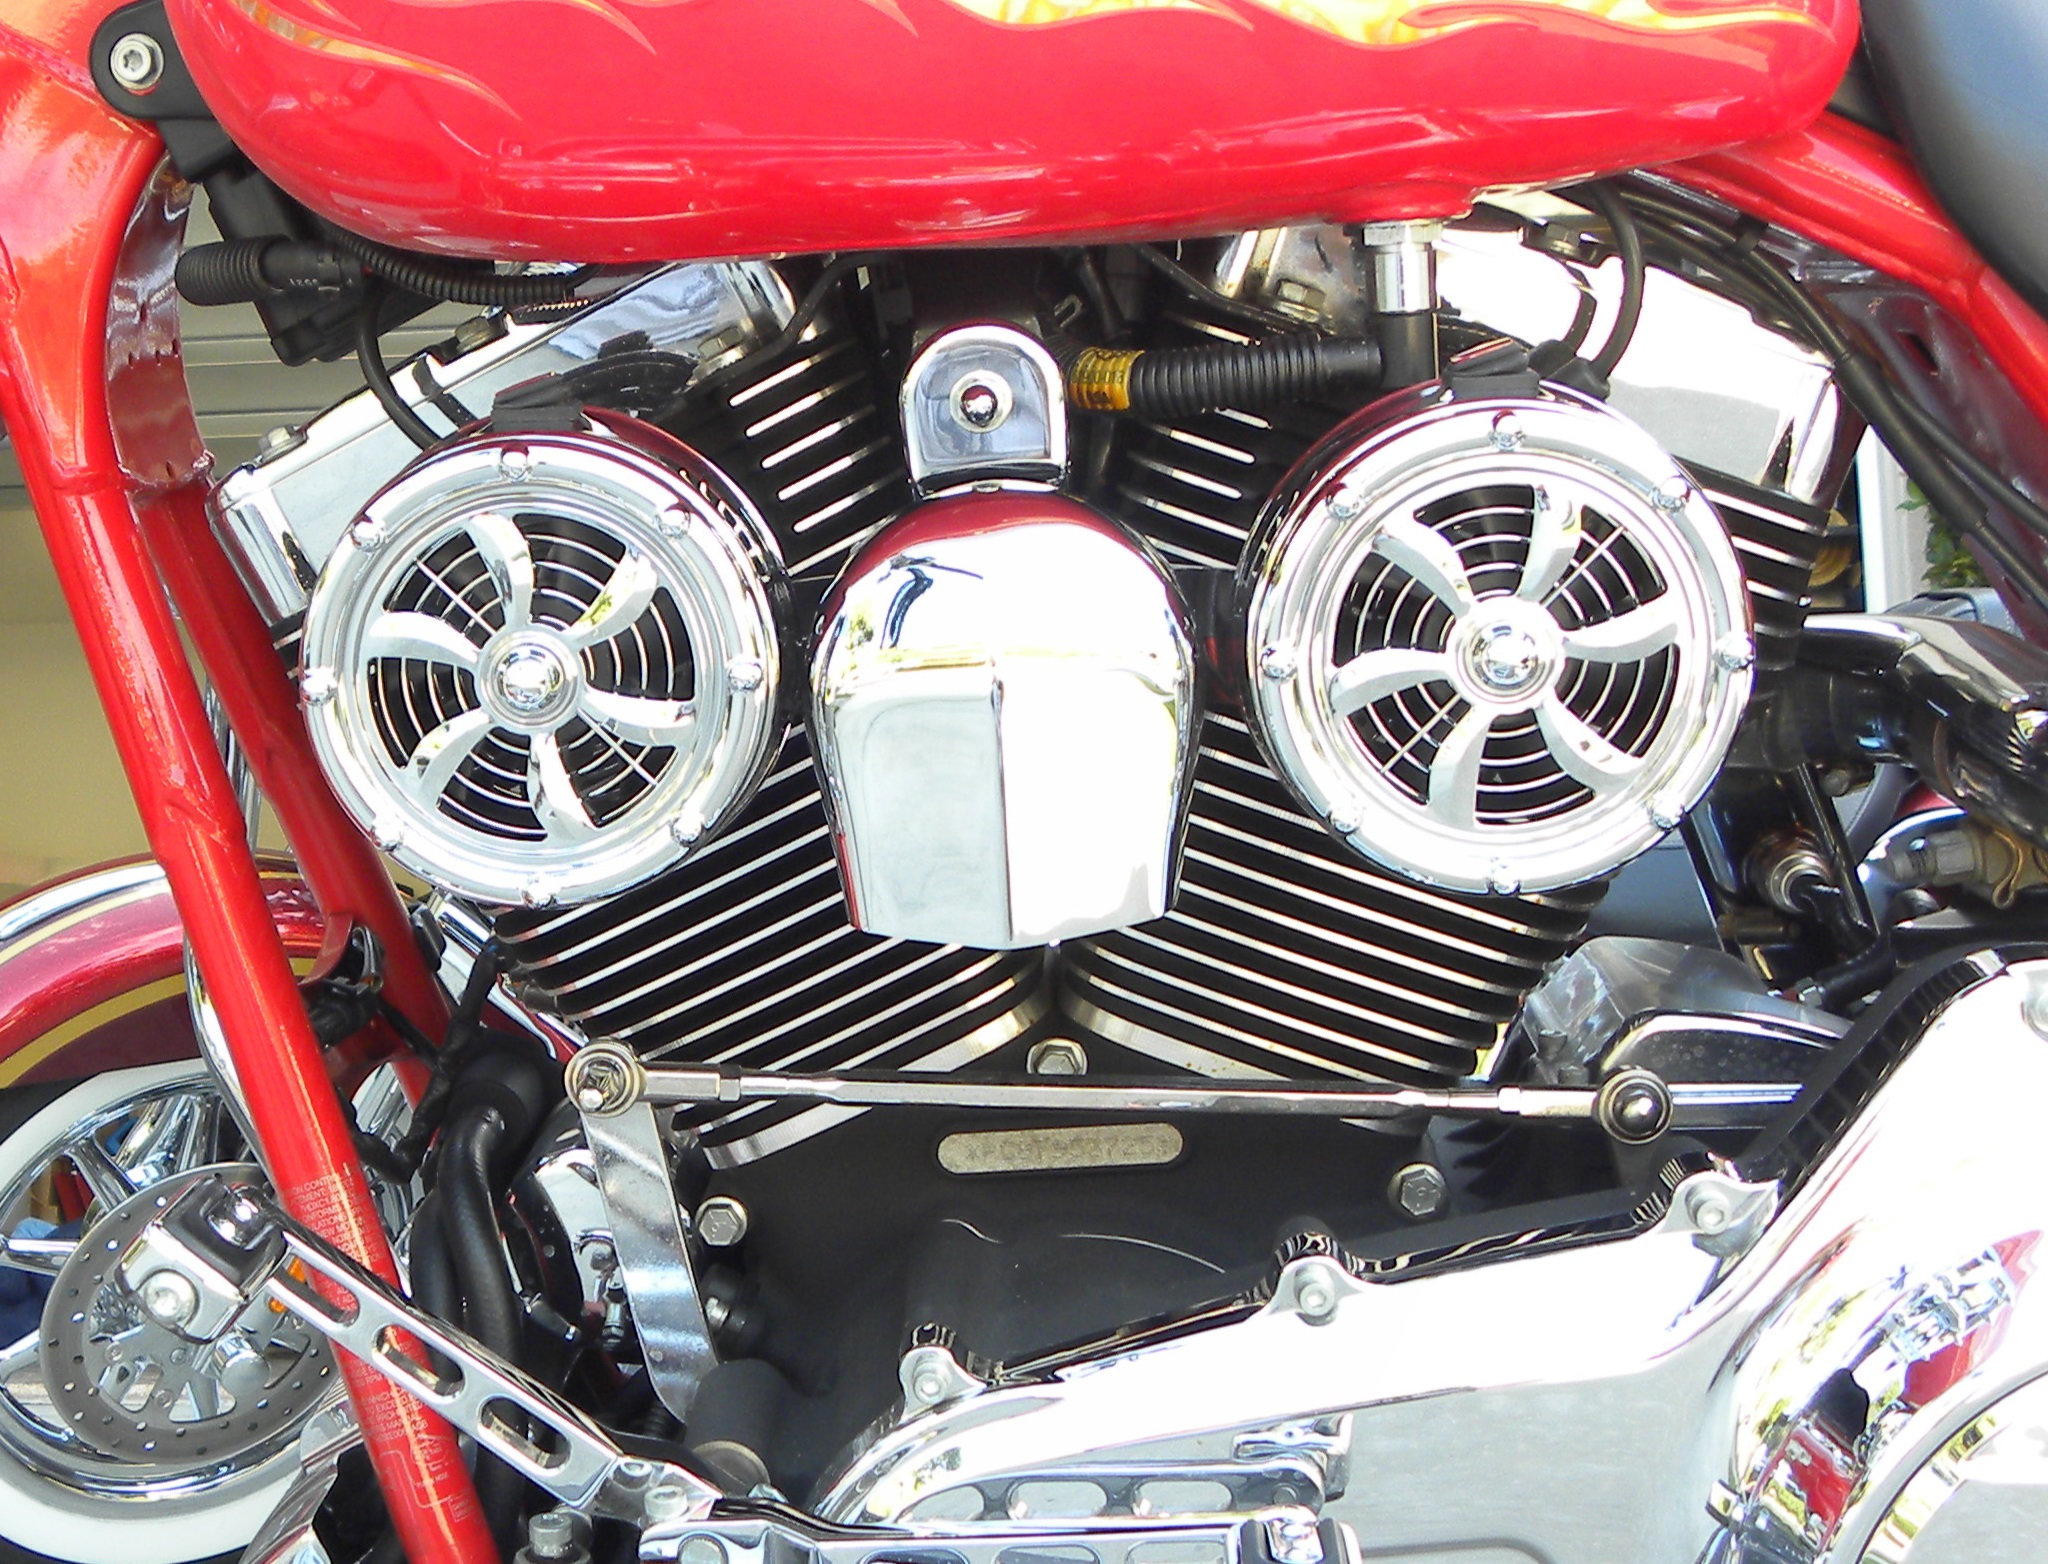 Harley Engine Cooler : Keep your cool love jugs harley cooling fans dennis